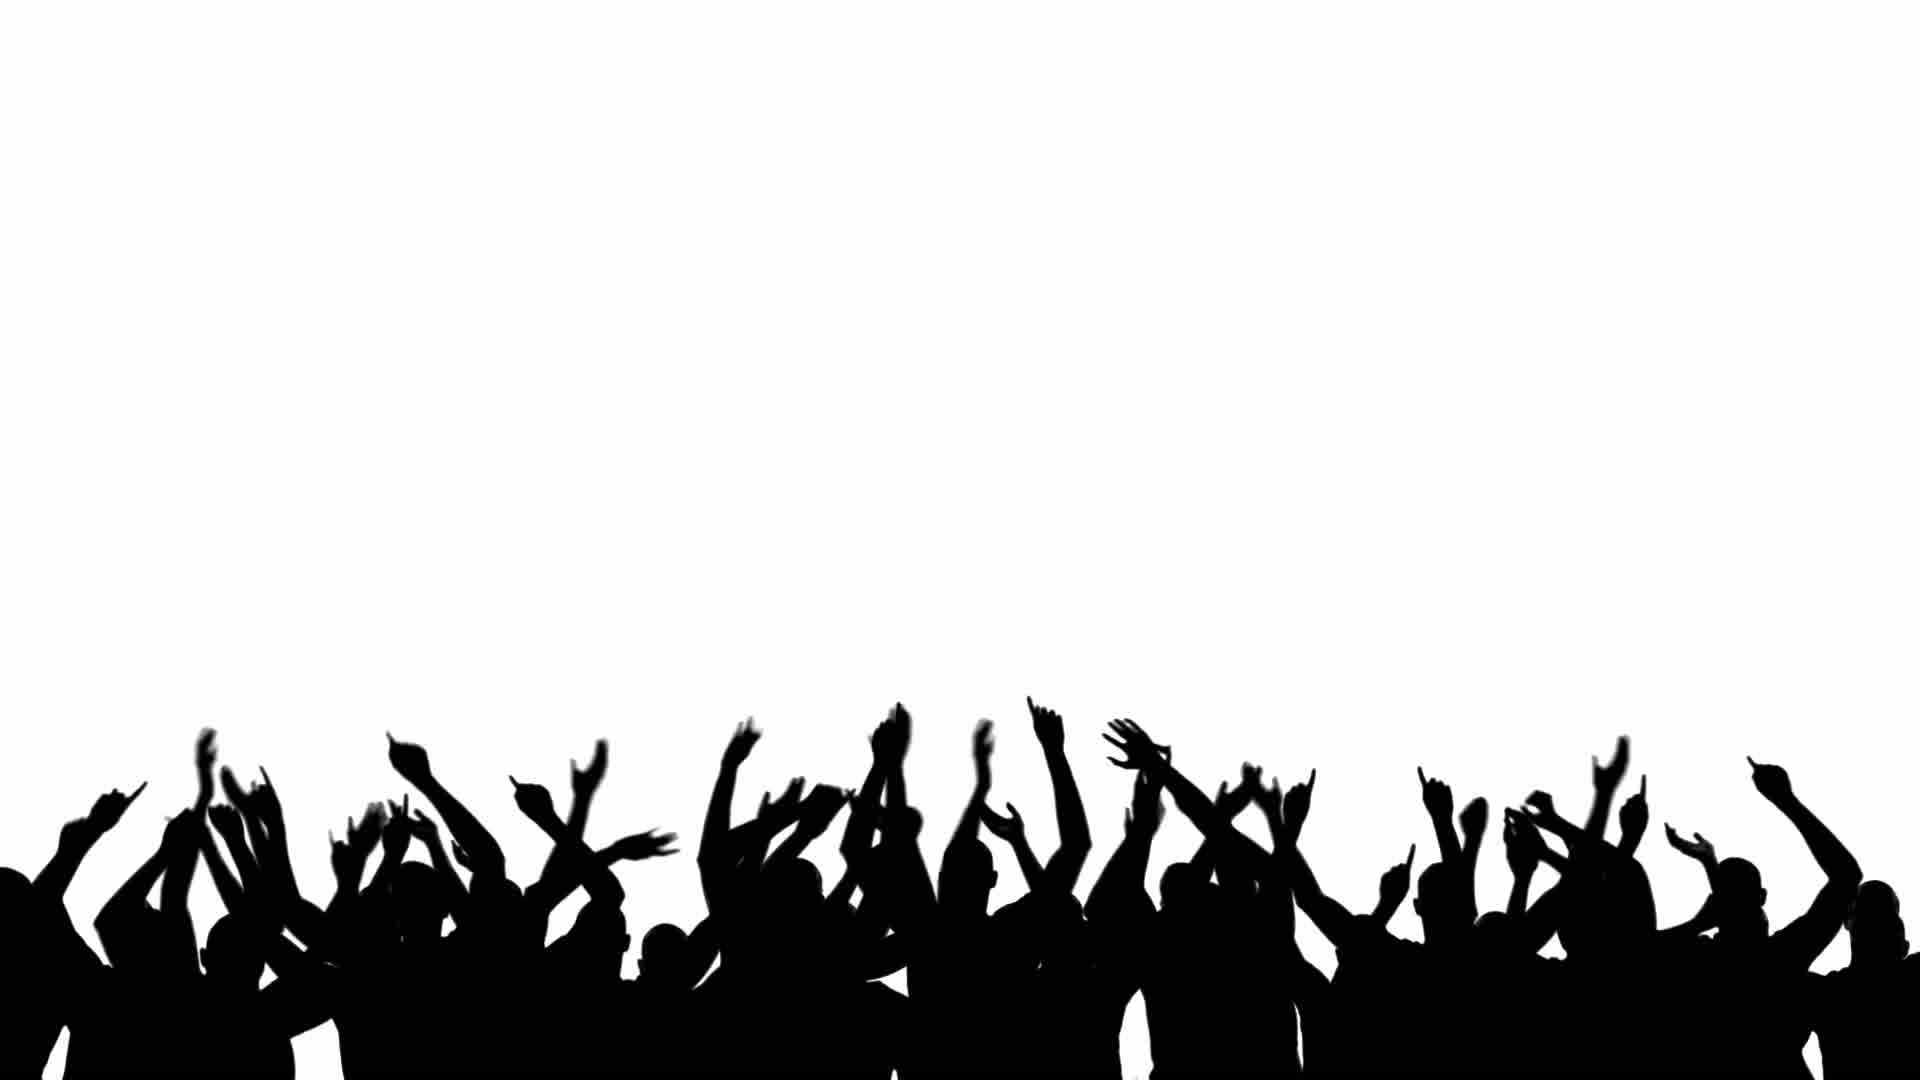 party silhouette party crowd silhouette png download party people silhouette party